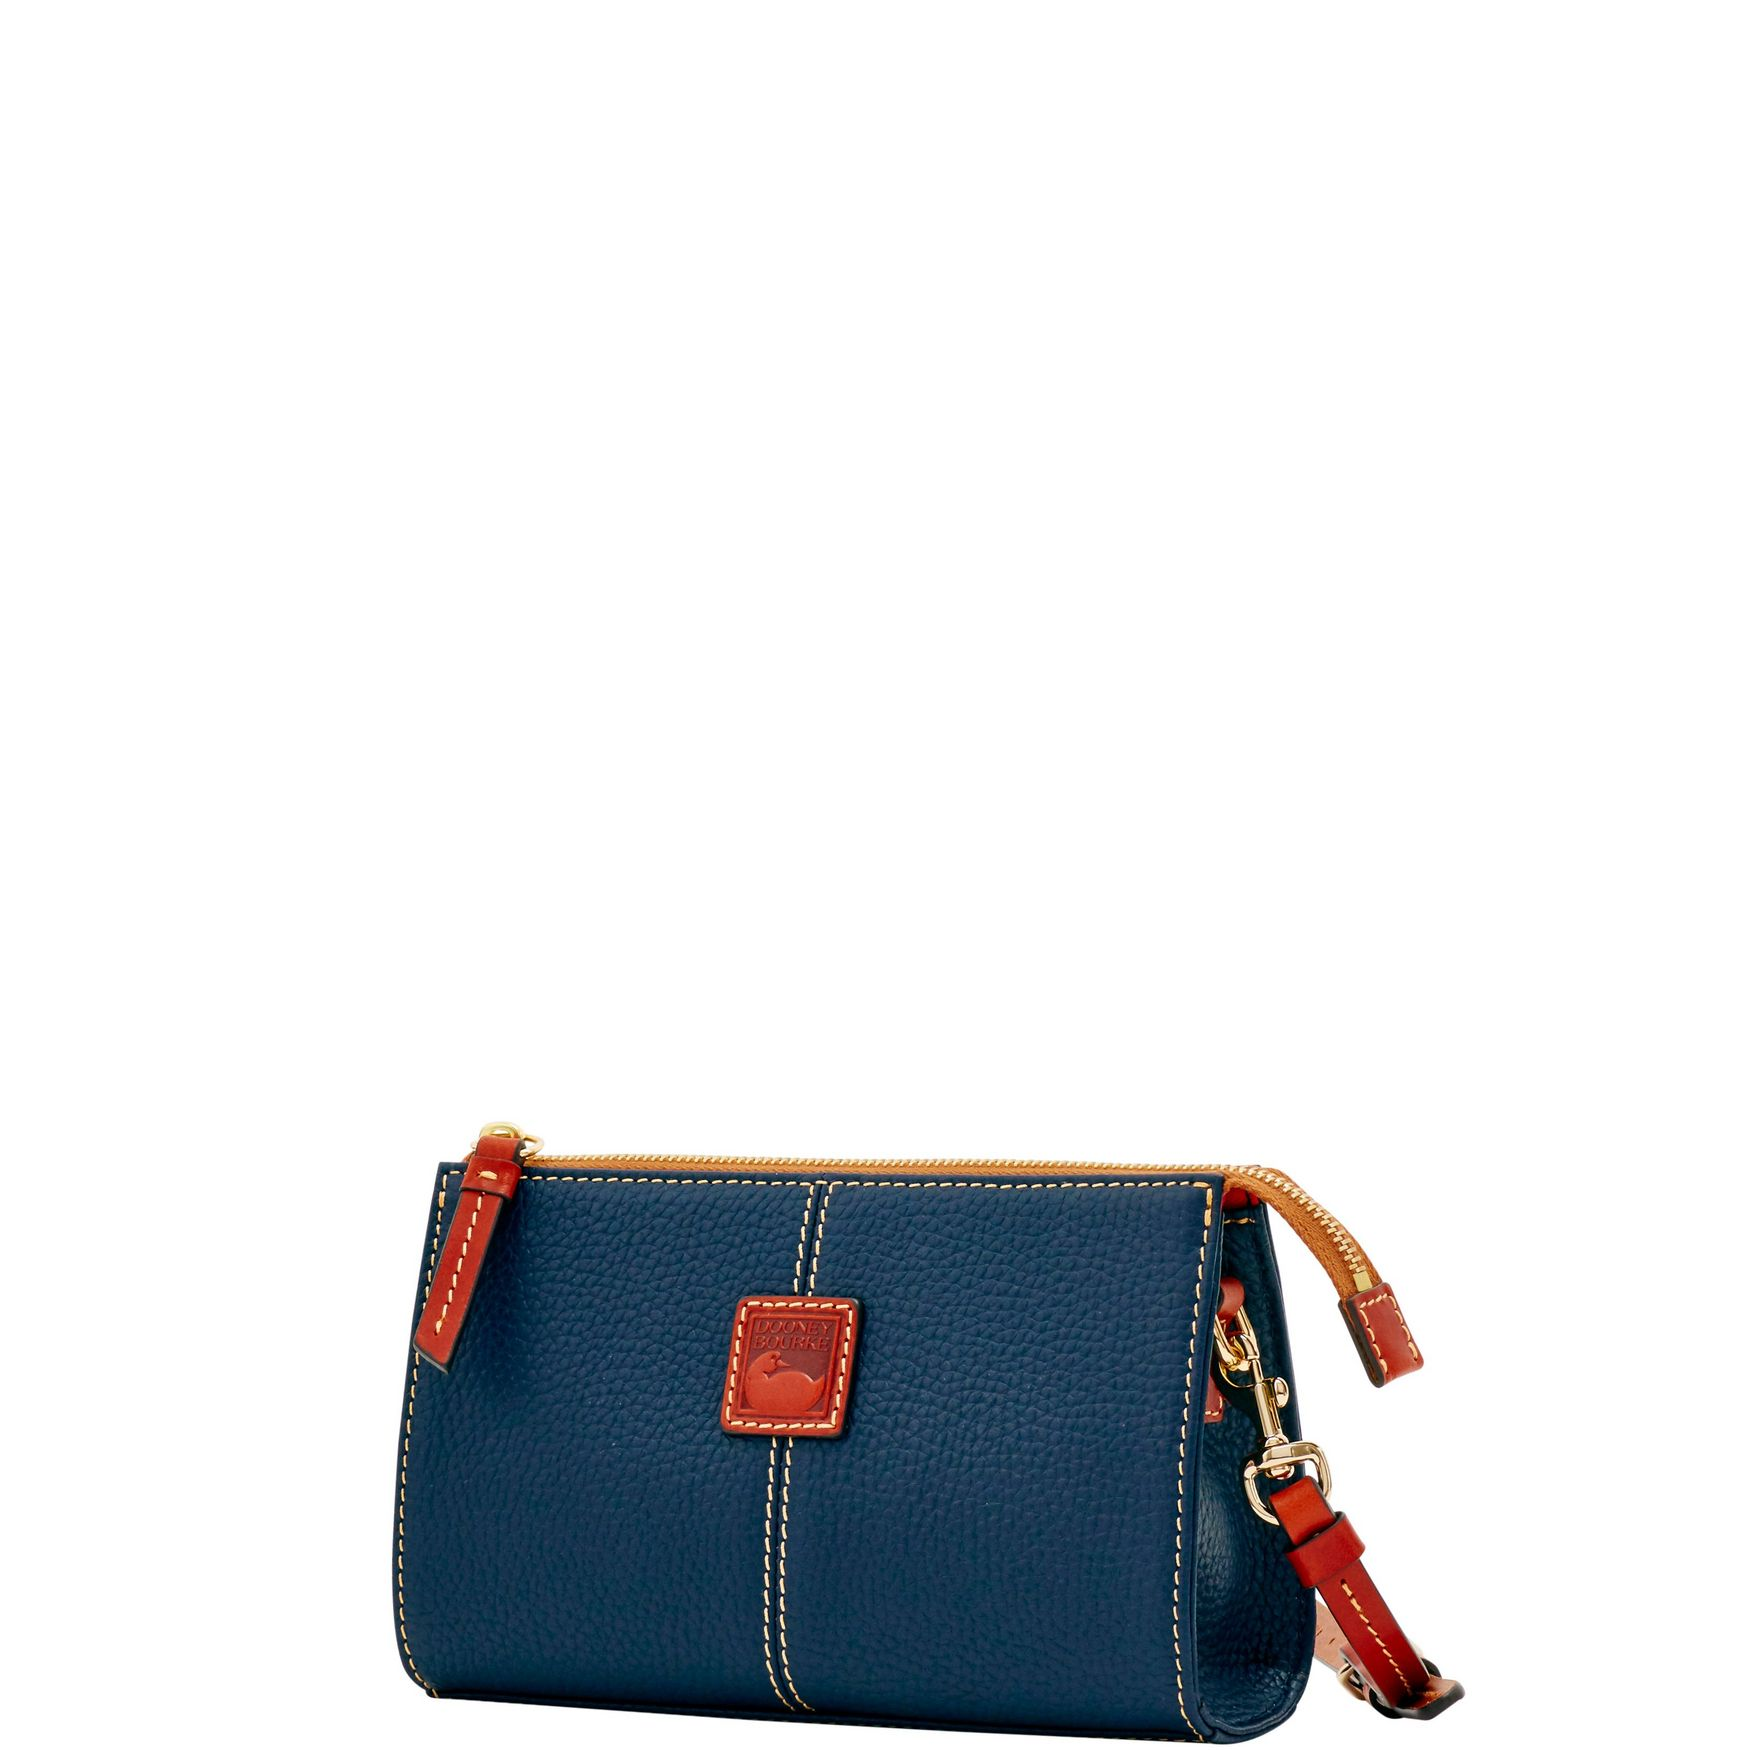 Dooney-amp-Bourke-Pebble-Grain-Small-Janine-Crossbody-Shoulder-Bag thumbnail 32